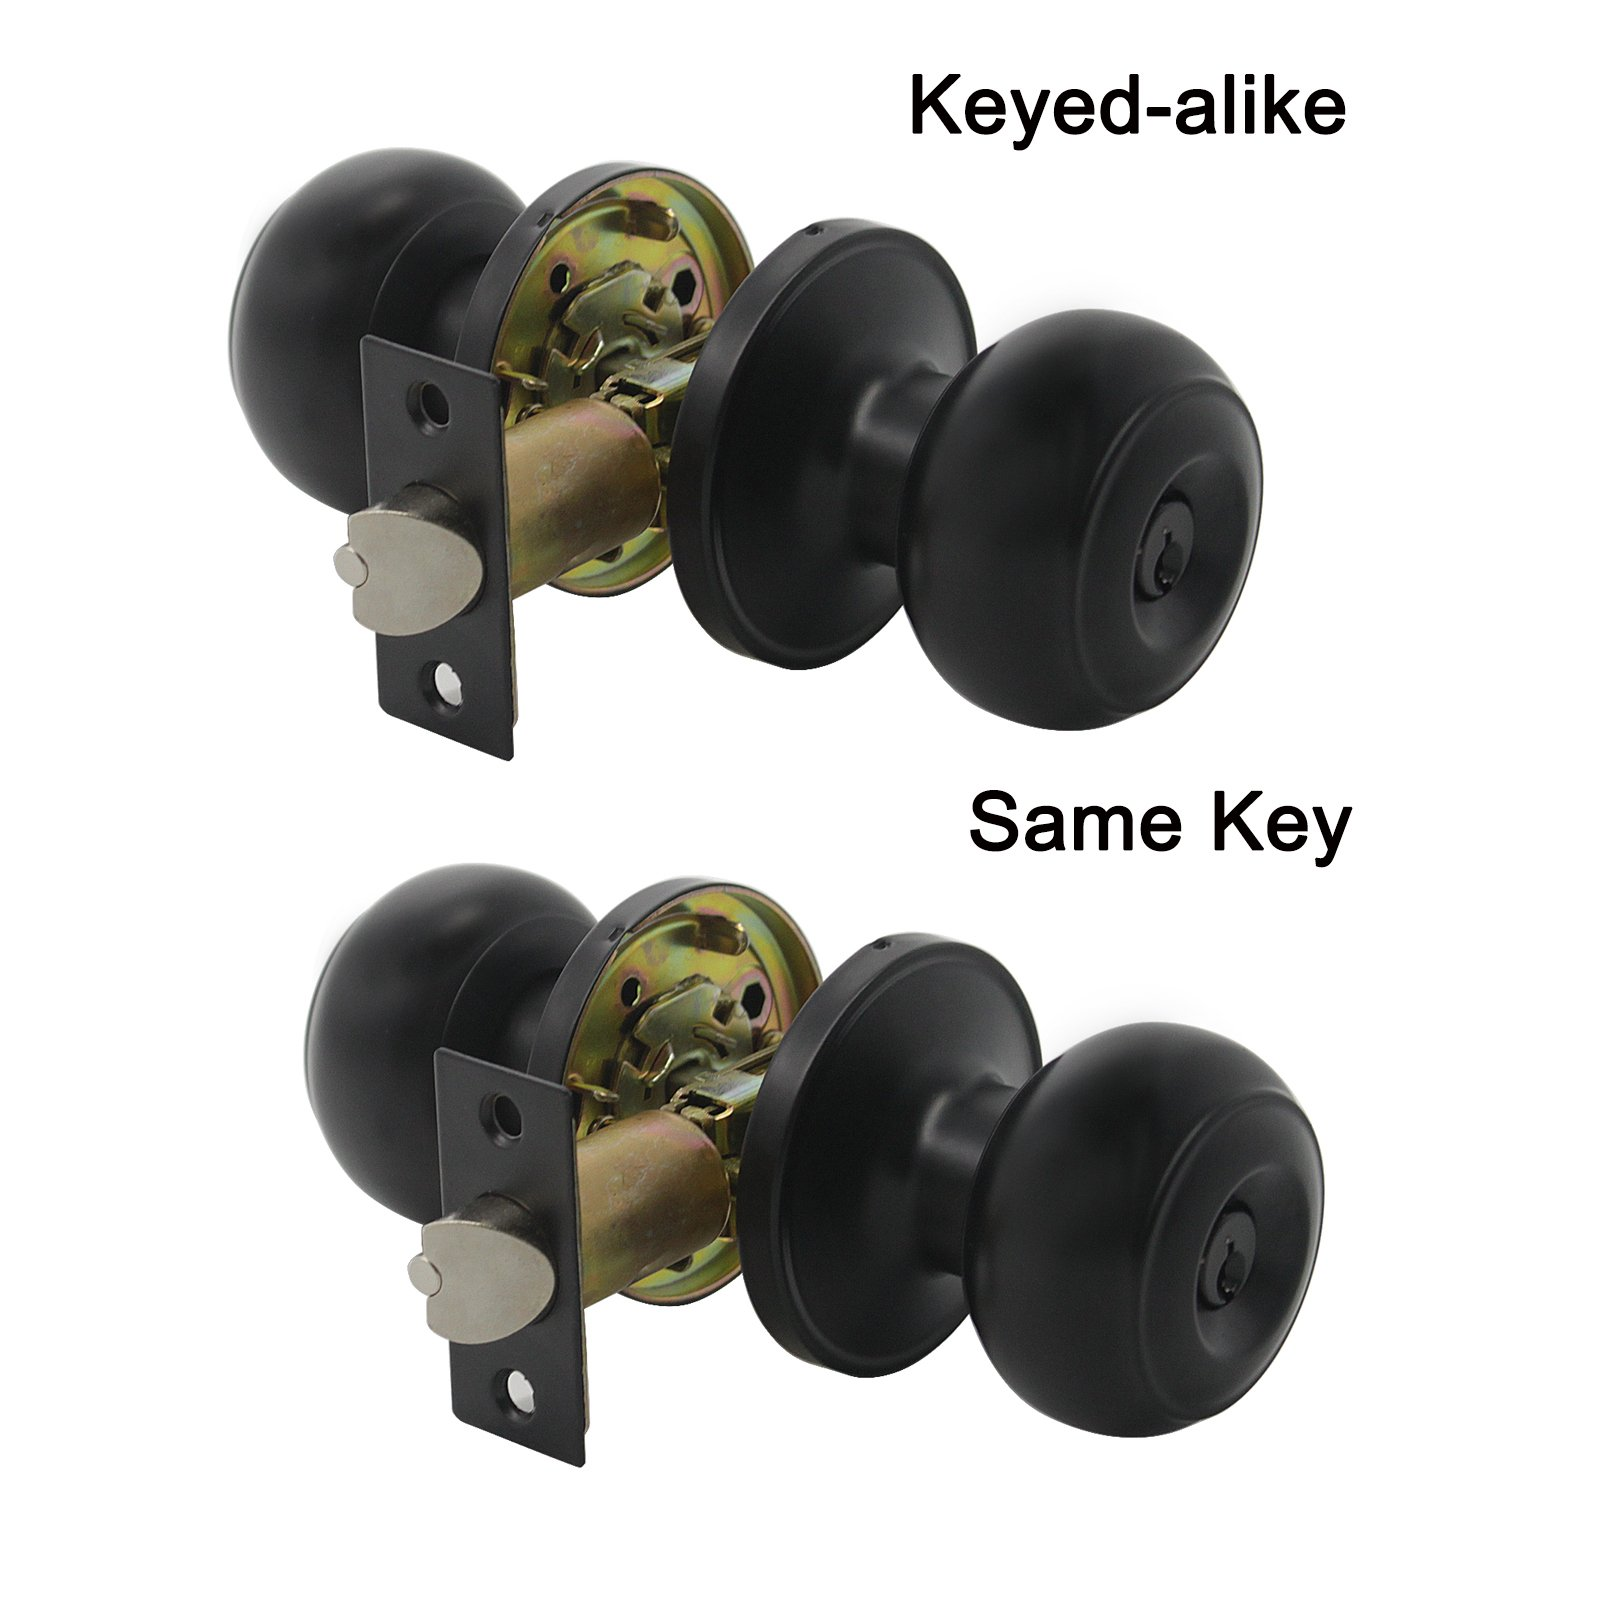 Gobrico Keyed-alike Exterior Door Knobs Flat Ball Door Locksets with Same Key, 2Pack